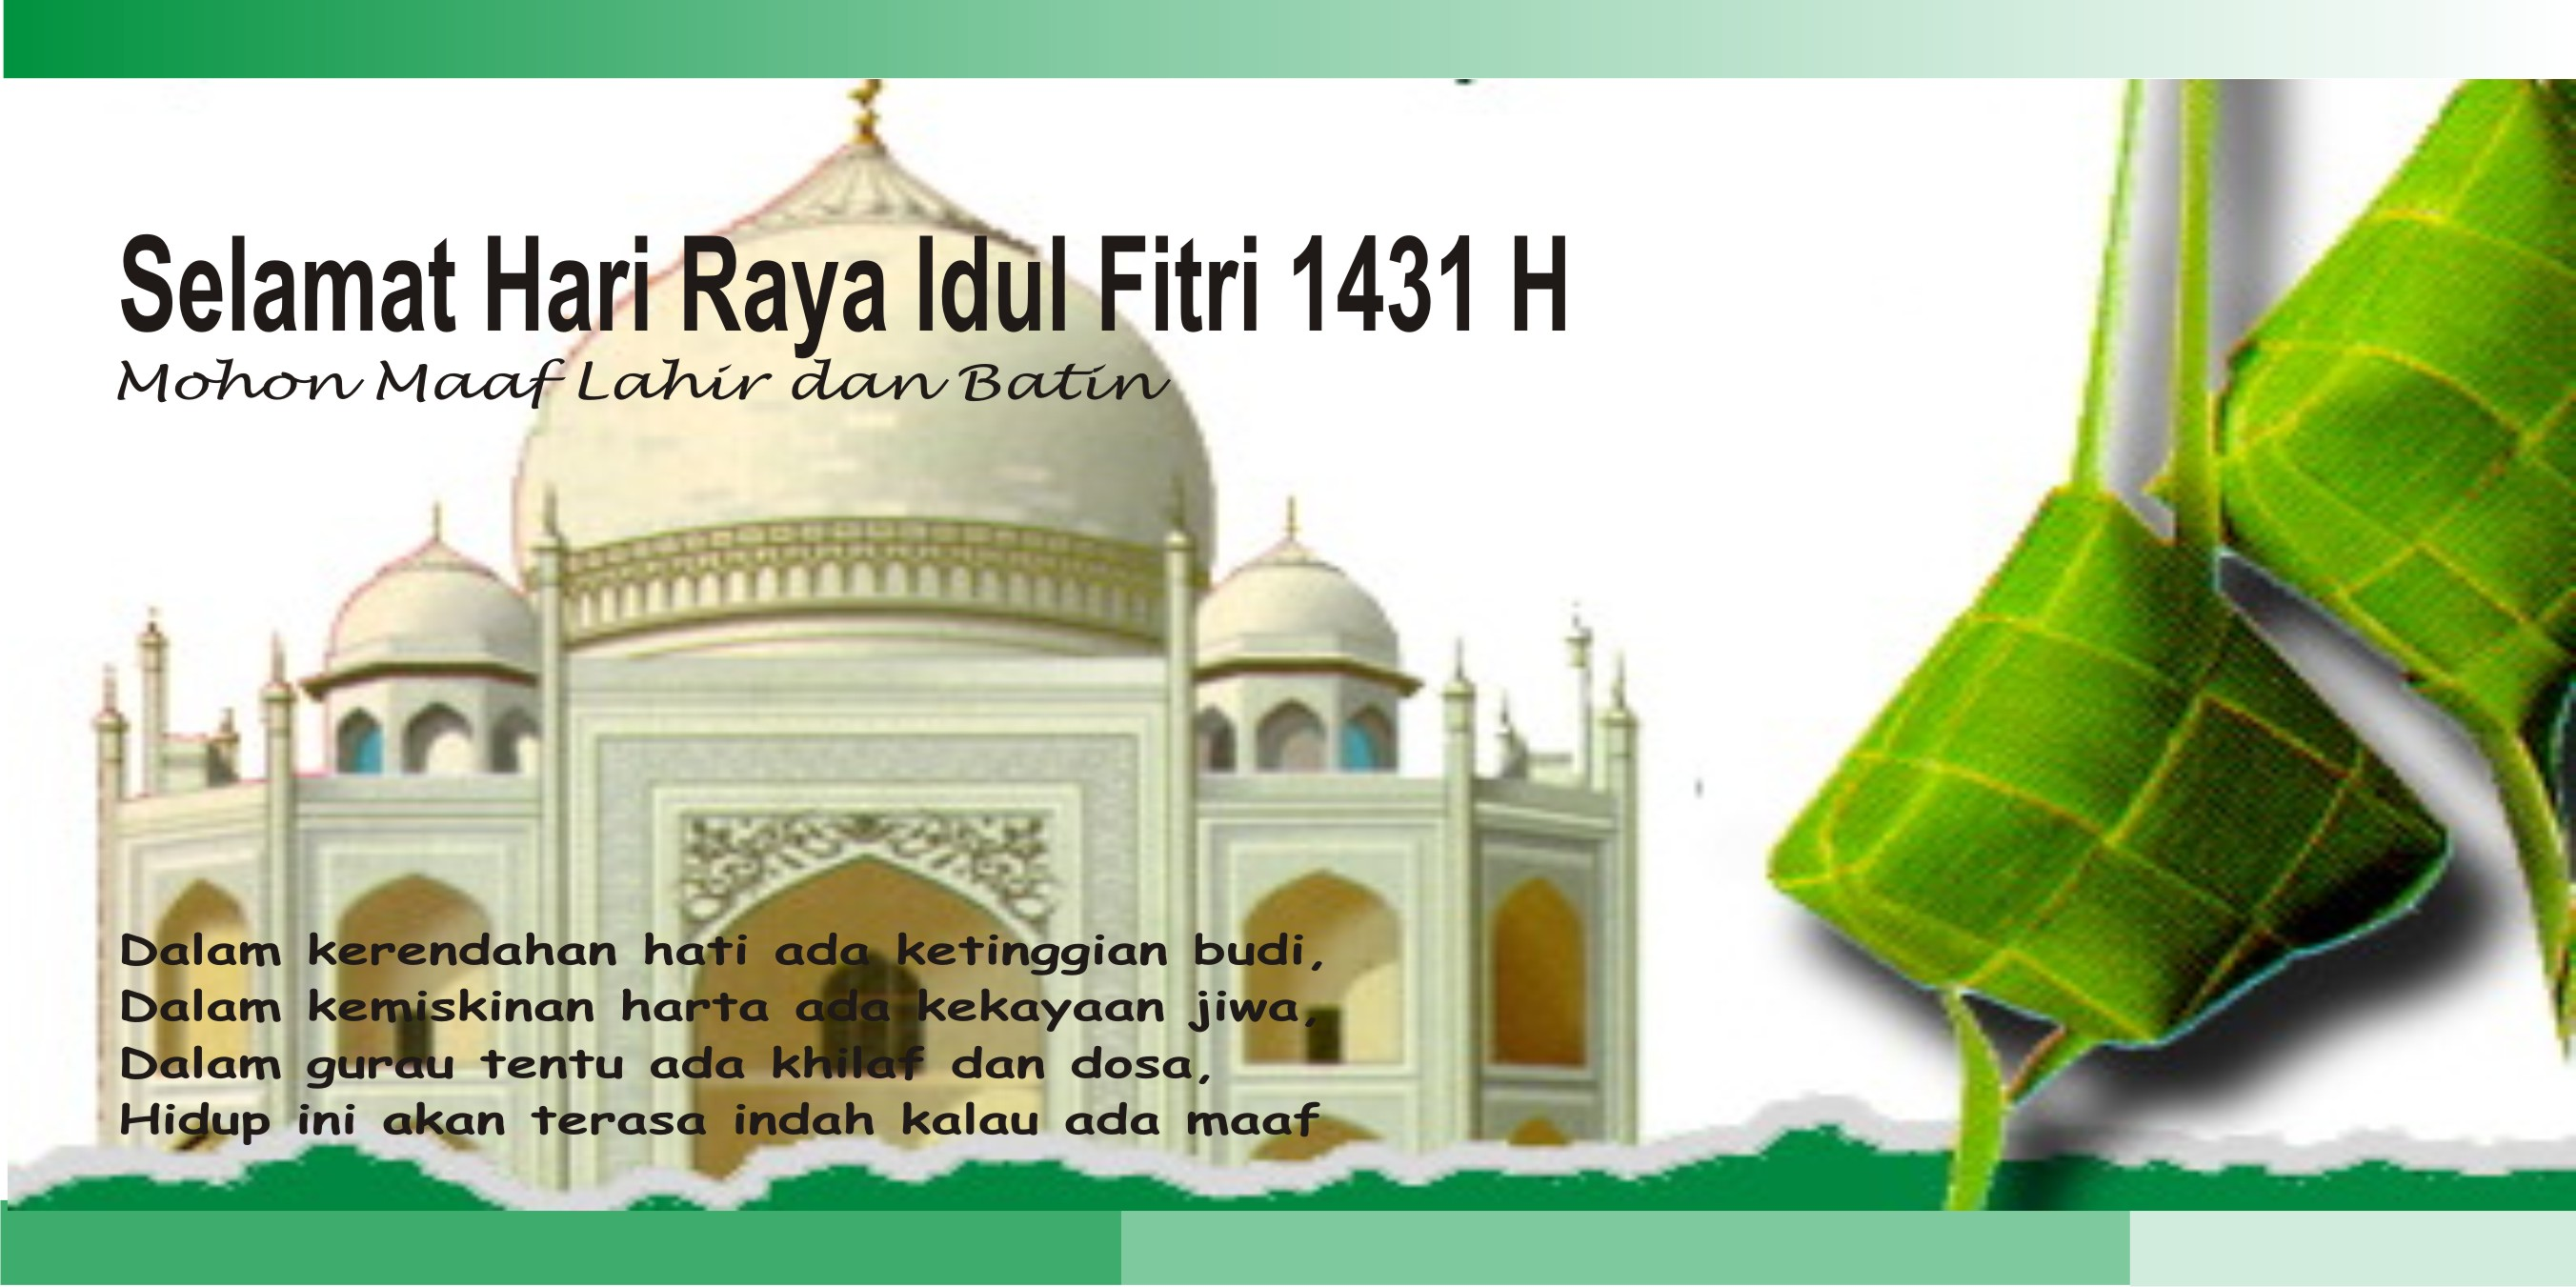 hari raya eidil fitri Our kampung spirit 23,270 likes 4 here are three dishes you wouldn't want to miss when at relatives' or friends' homes during hari raya aidilfitri.